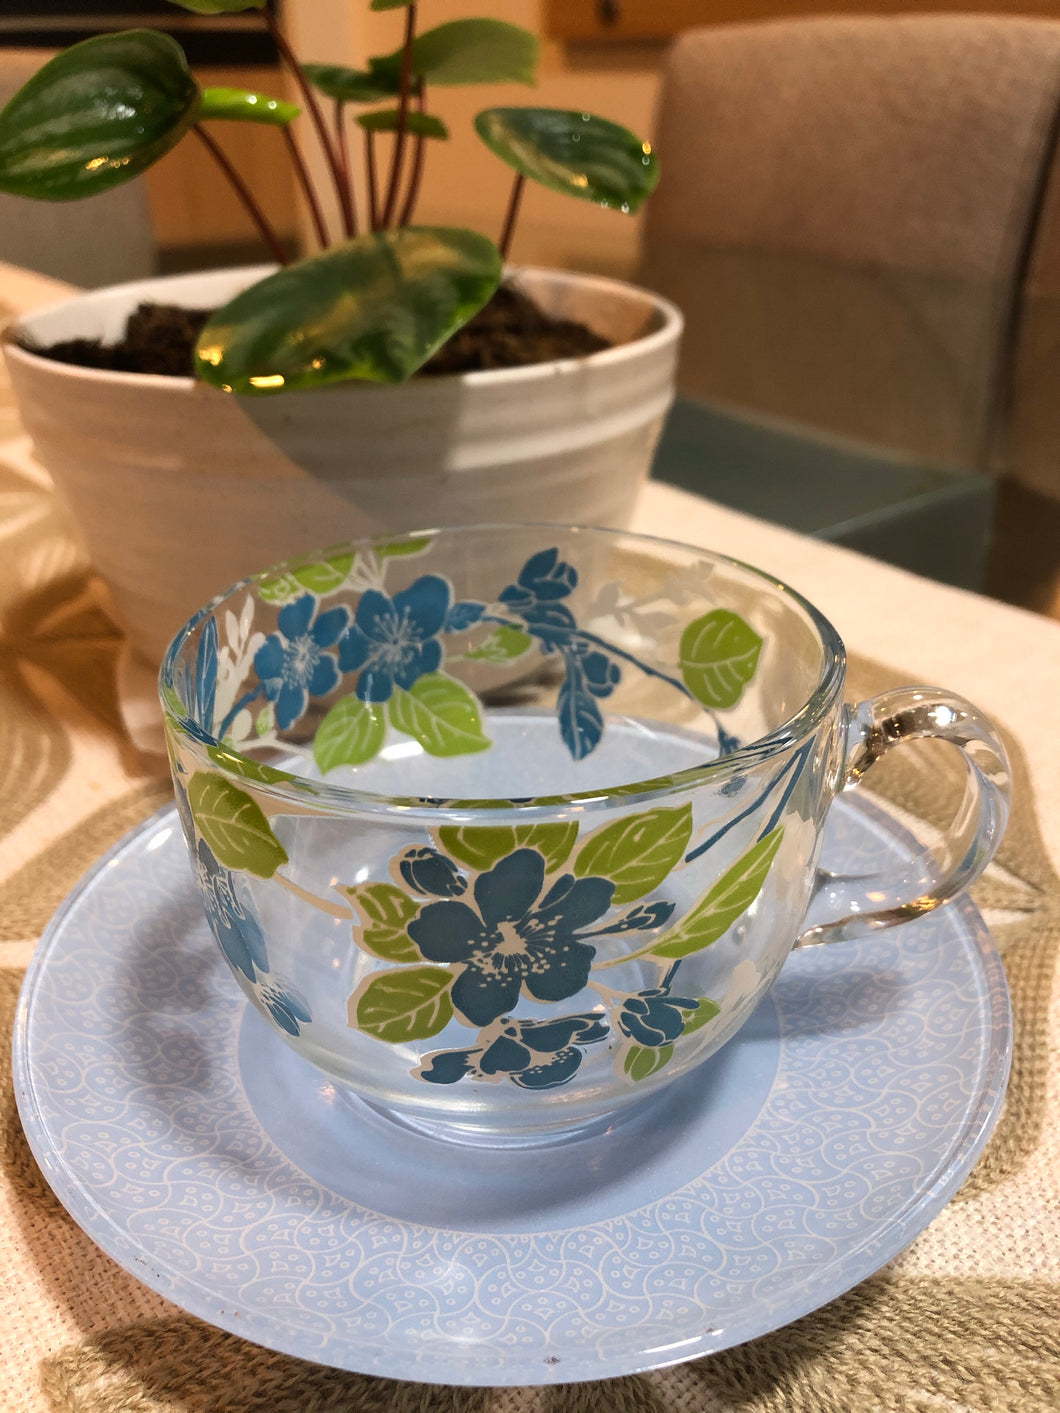 Blue cup and saucer set